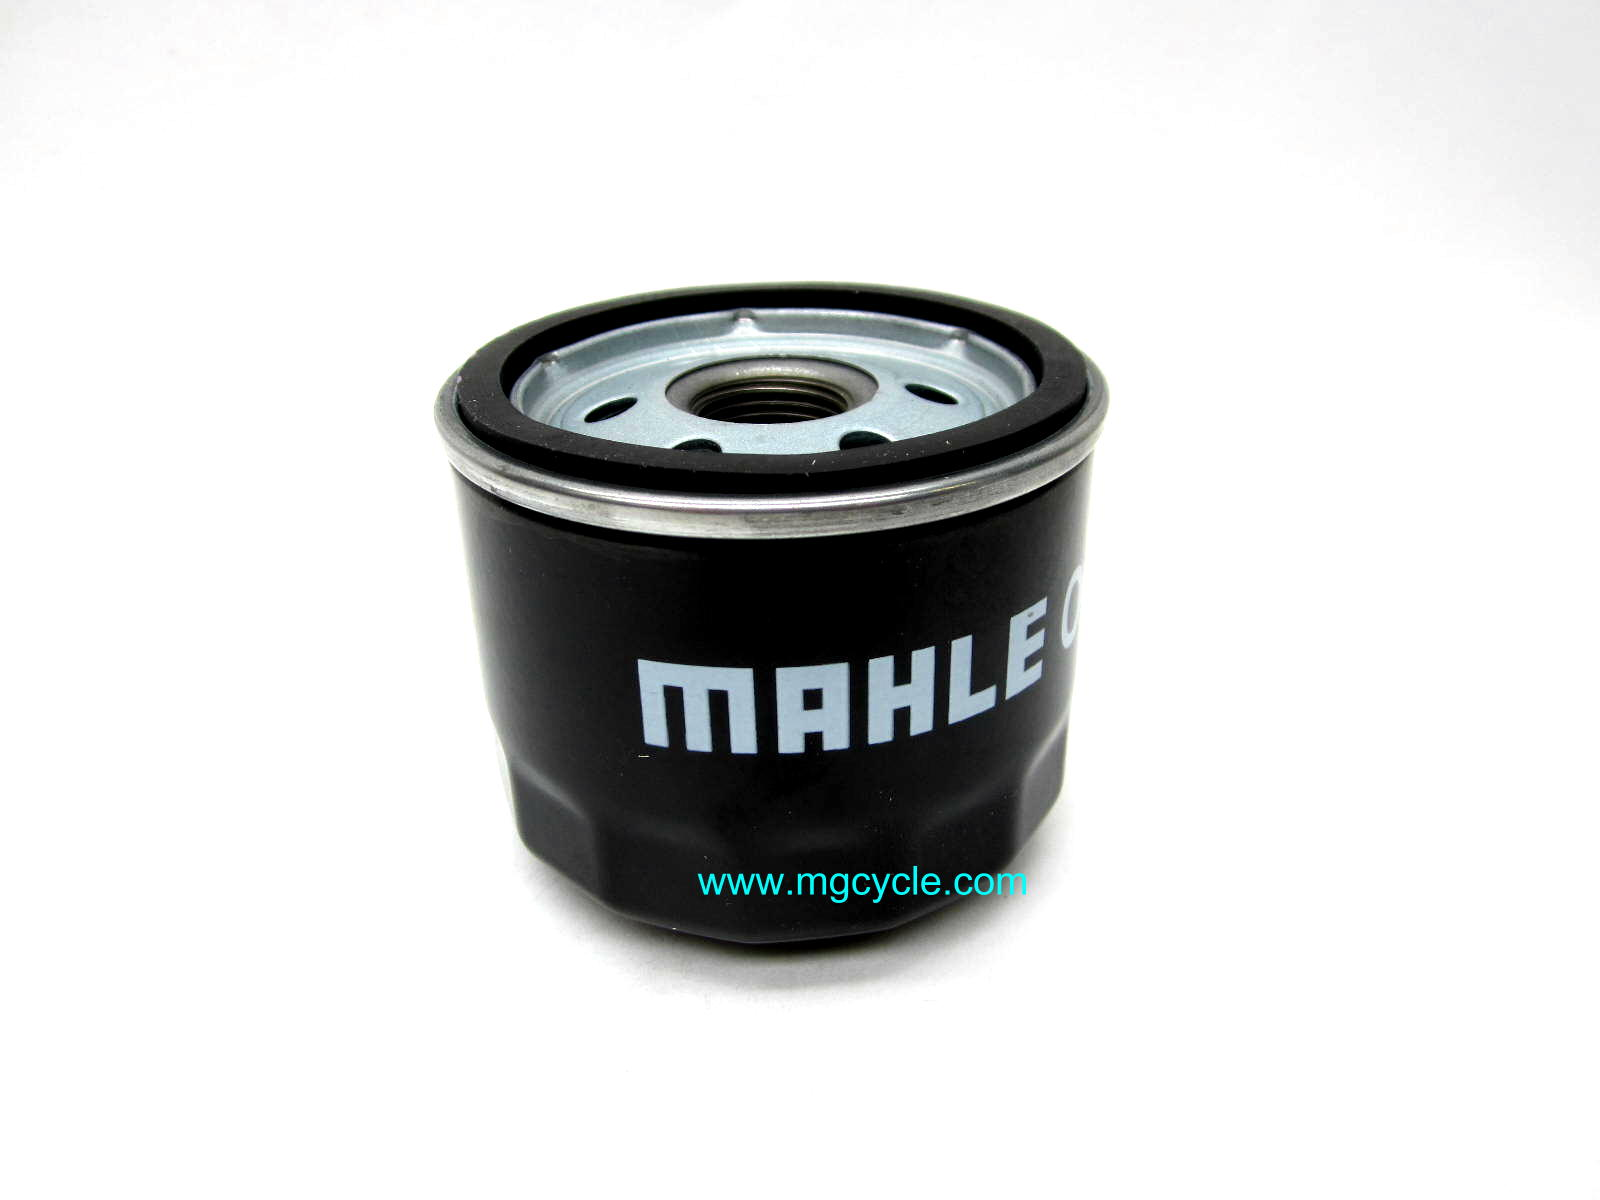 Mahle Knecht oil filter California 1400 series, Griso 2015-2016